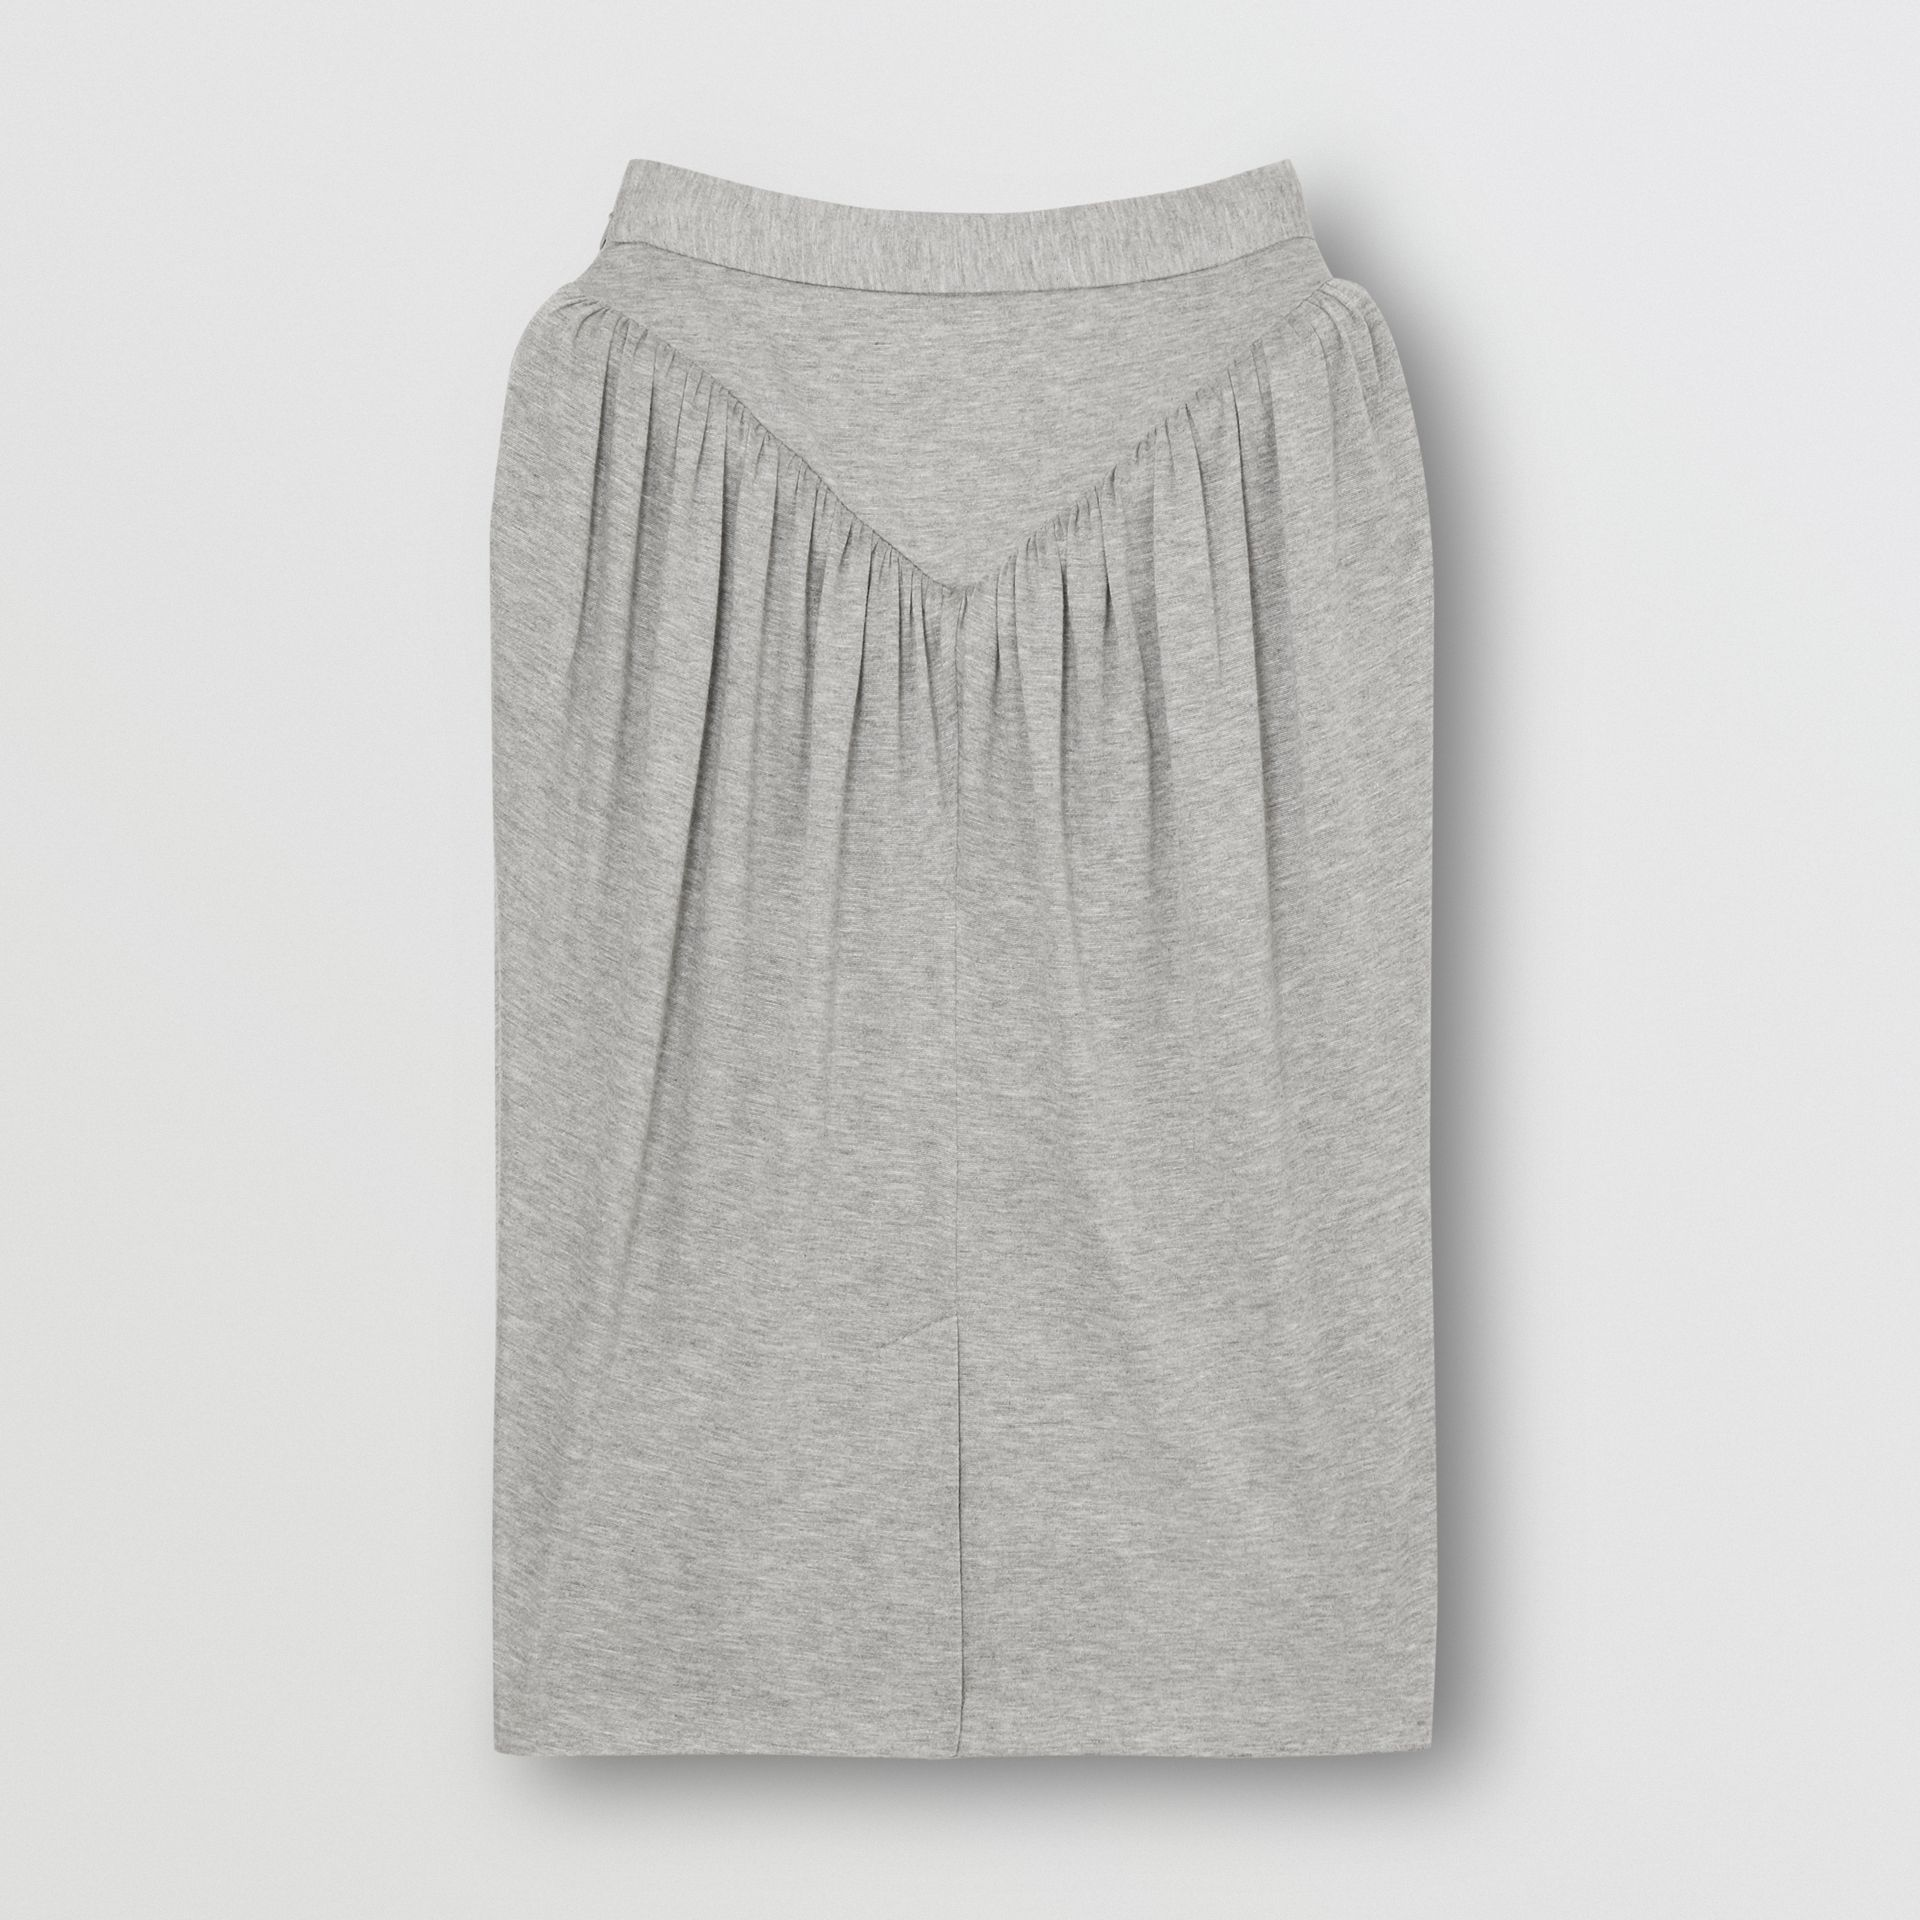 Gathered Jersey Sculptural Skirt in Pewter Melange - Women | Burberry - gallery image 3